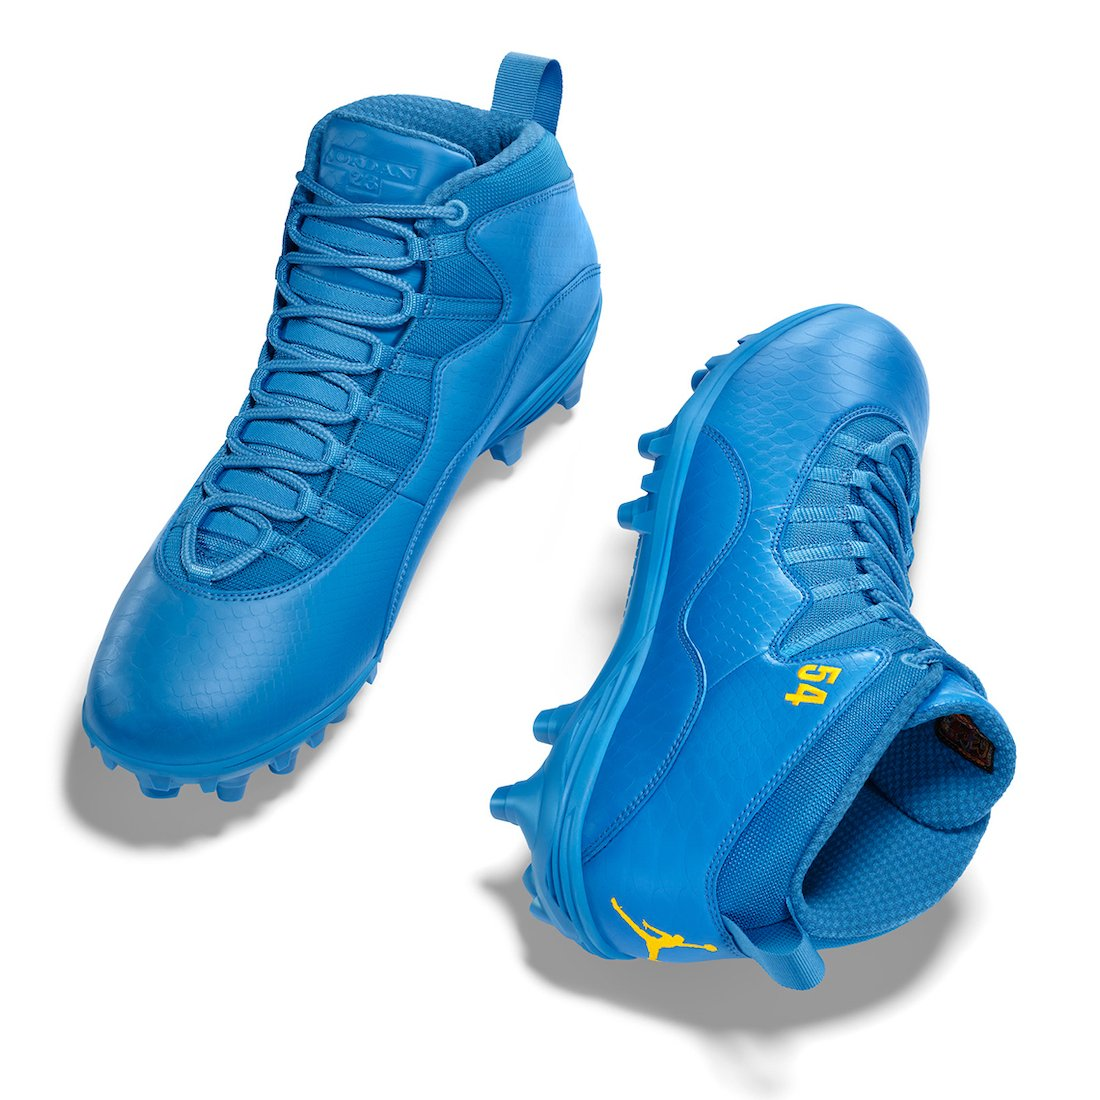 Melvin Ingram Air Jordan 10 NFL 2020 PE Cleats